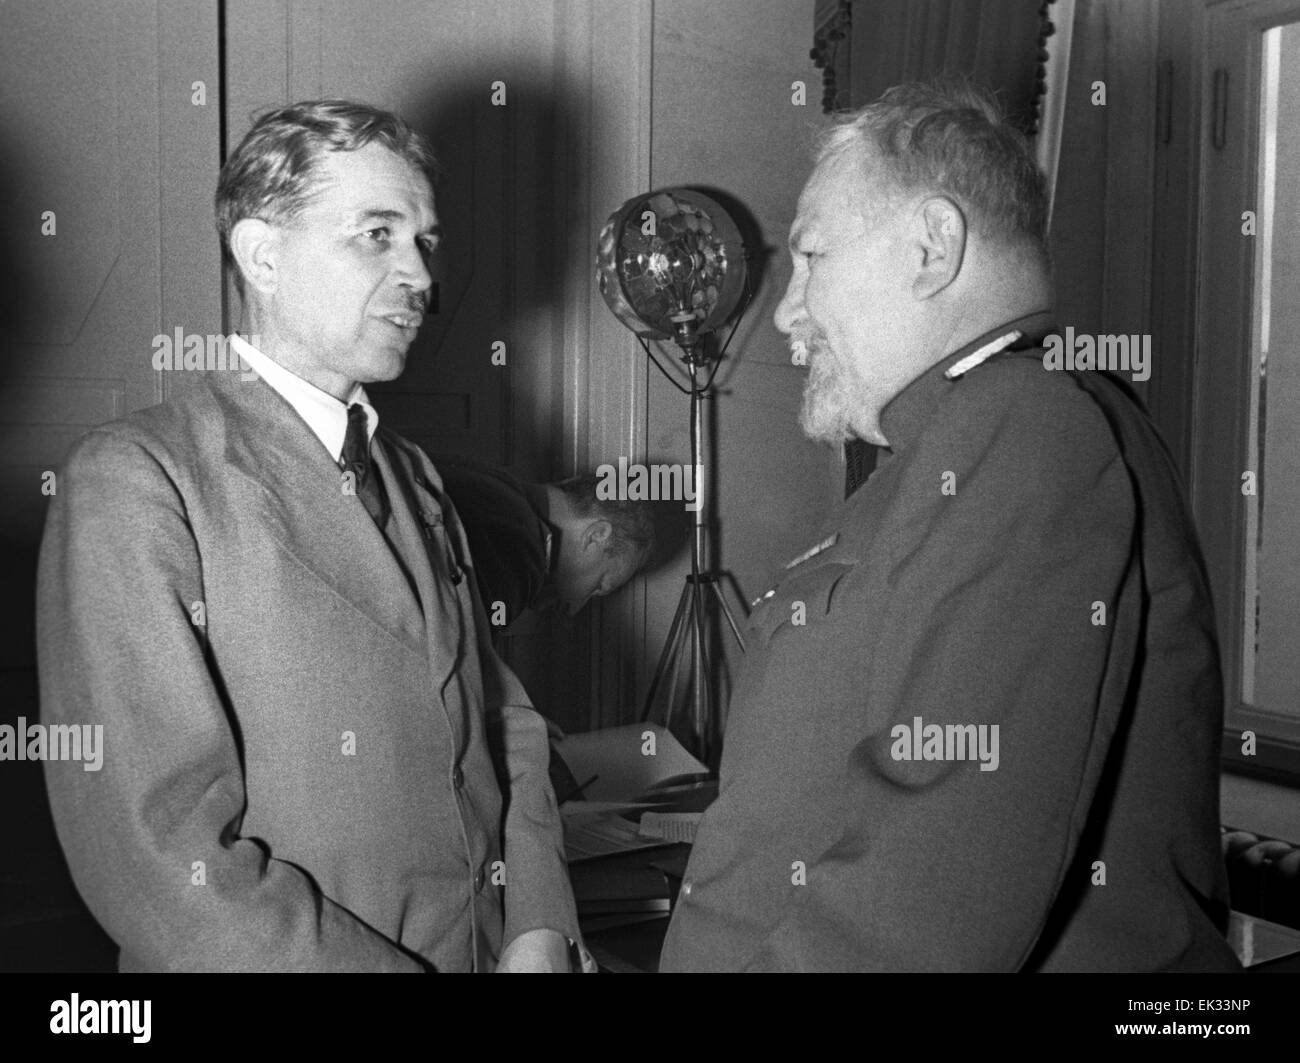 Moscow. USSR. Academicians Sergei Vavilov L and Vladimir Obraztsov during a break at the session of the USSR Academy - Stock Image